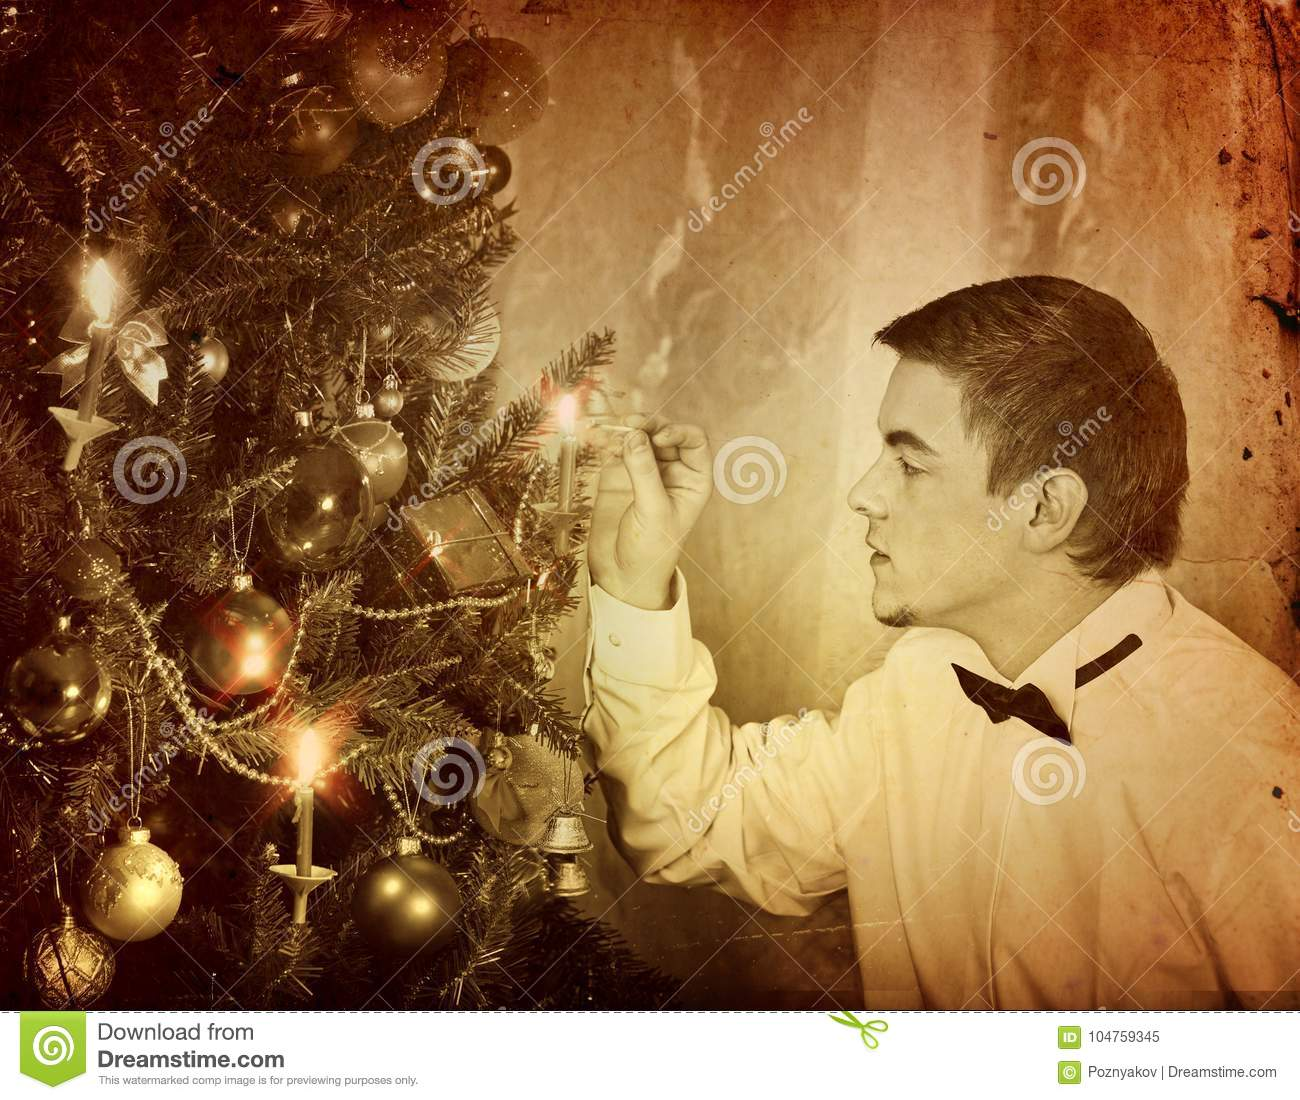 man alone put up christmas tree expectation of holiday on eve of xmas party at home alone black and white xmas vintage image - Home Alone White Christmas